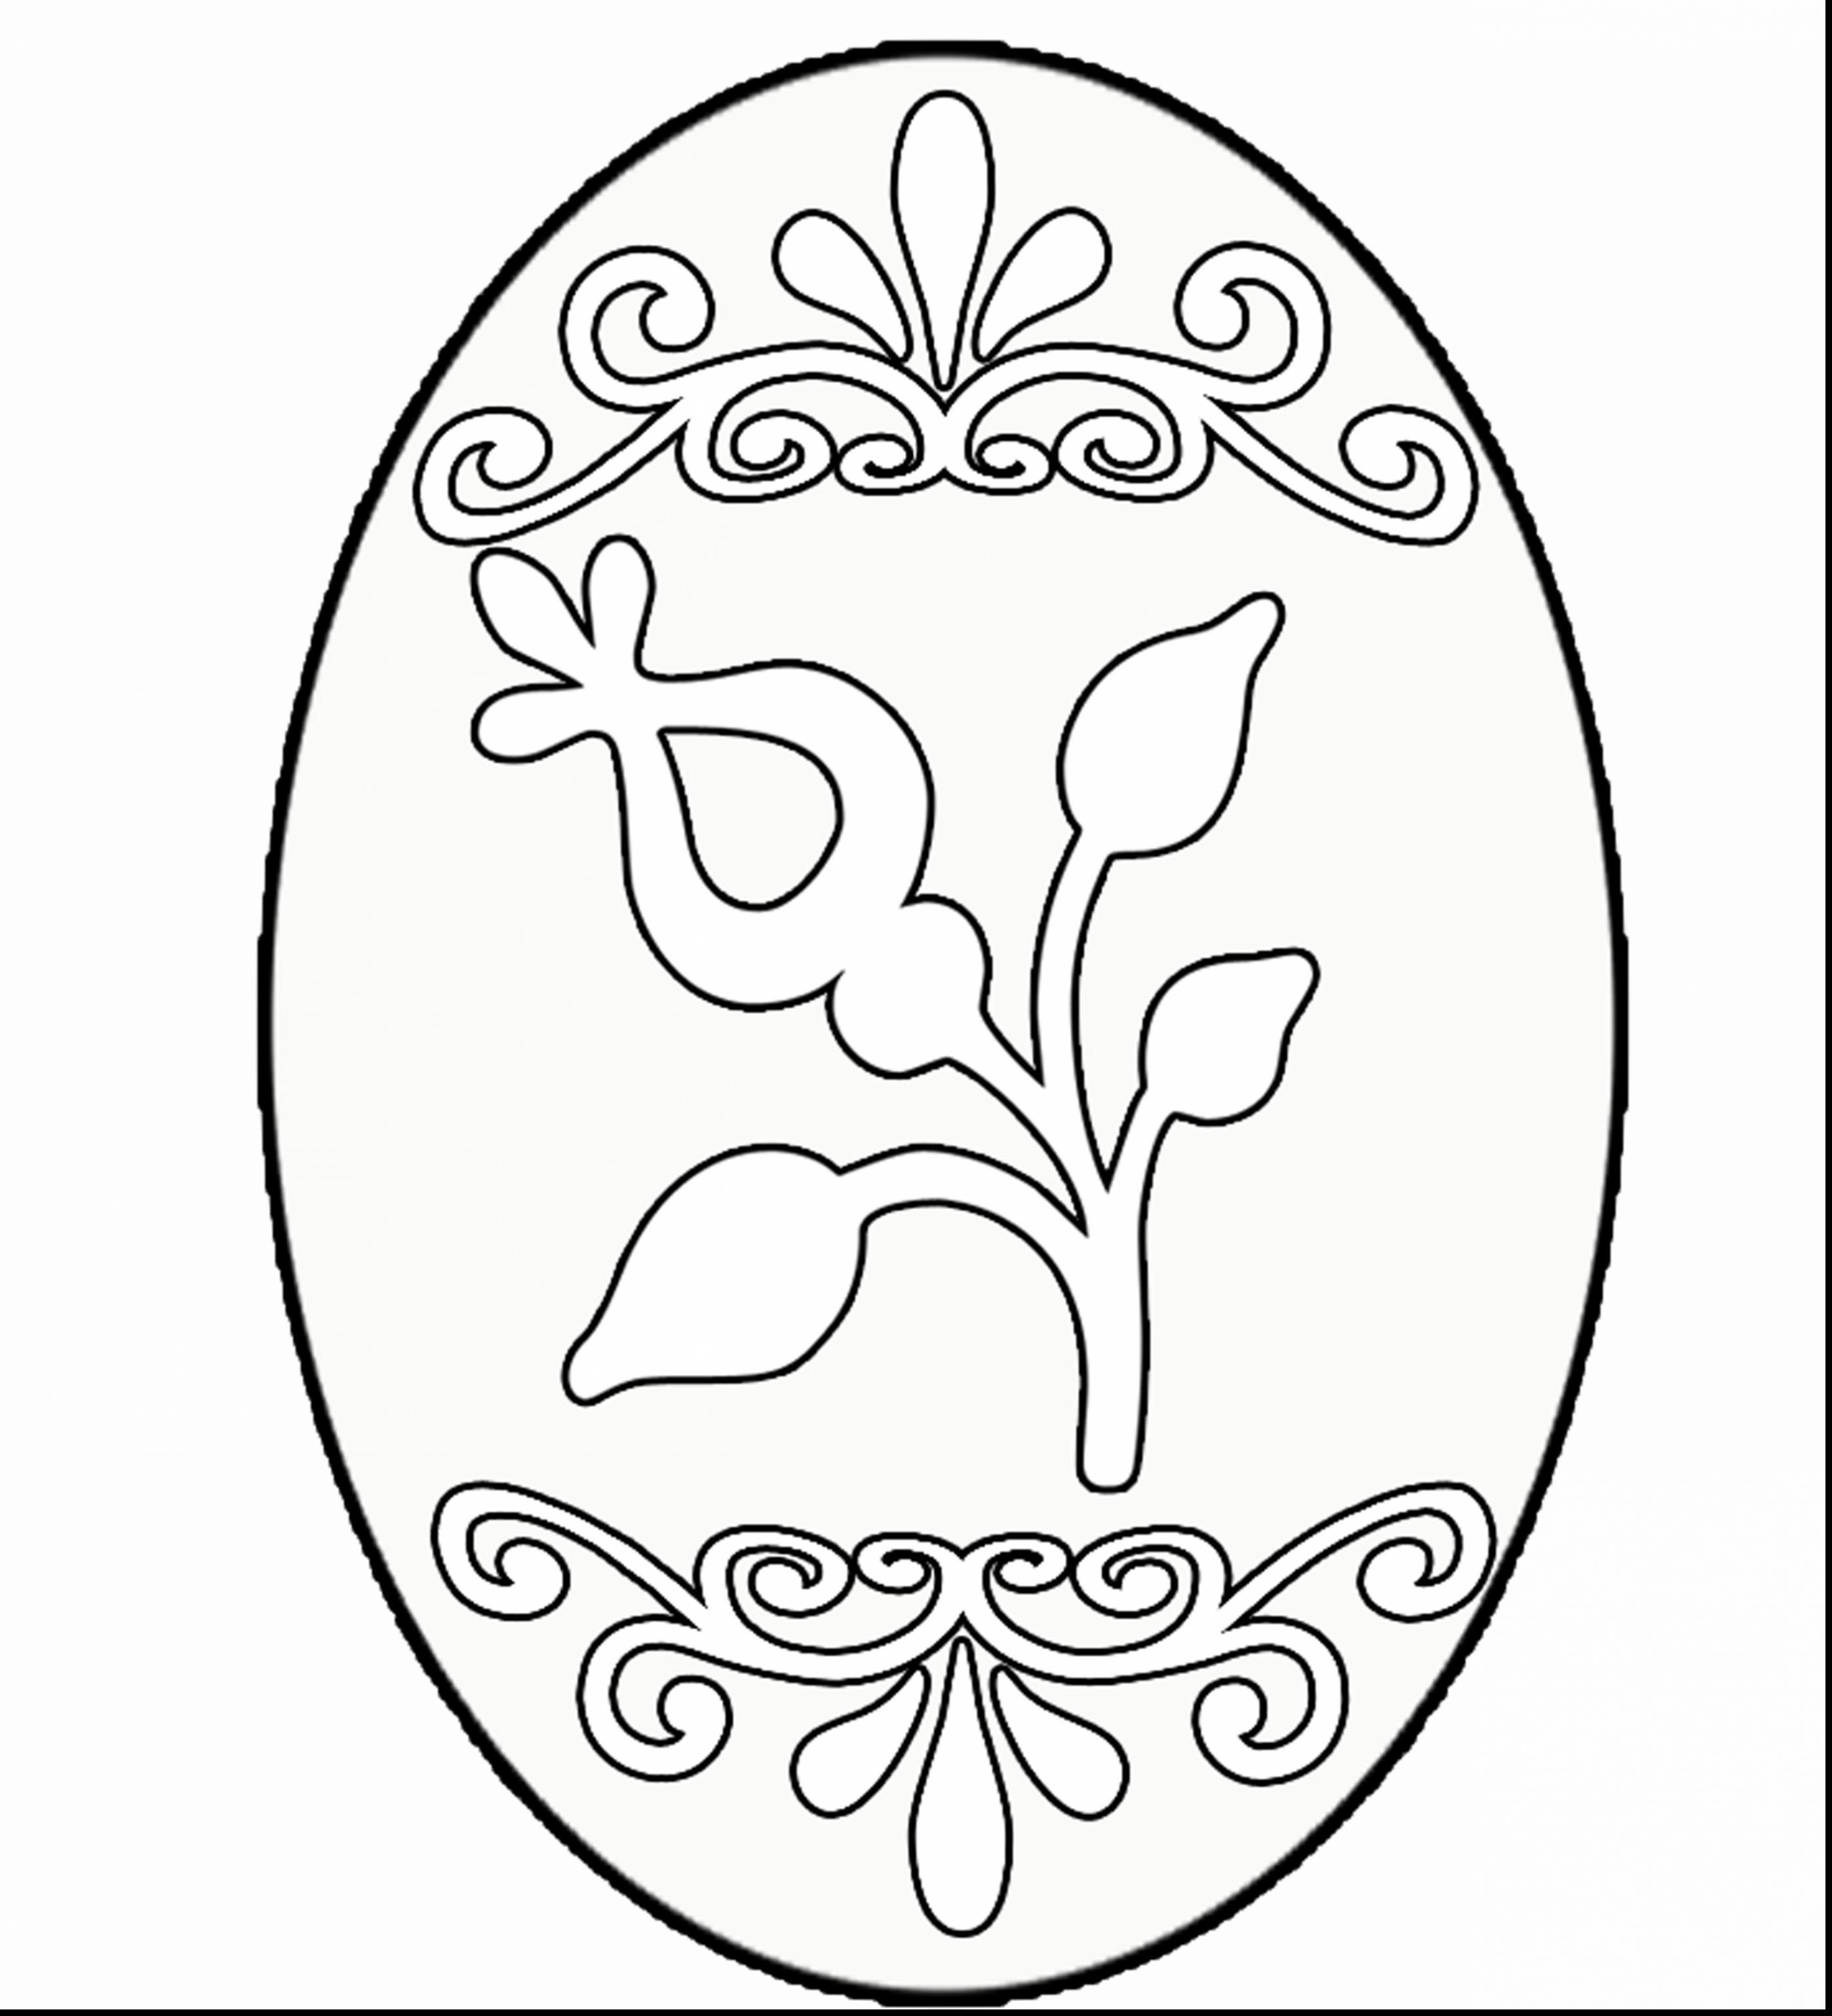 Easter Egg Colouring Pages 1